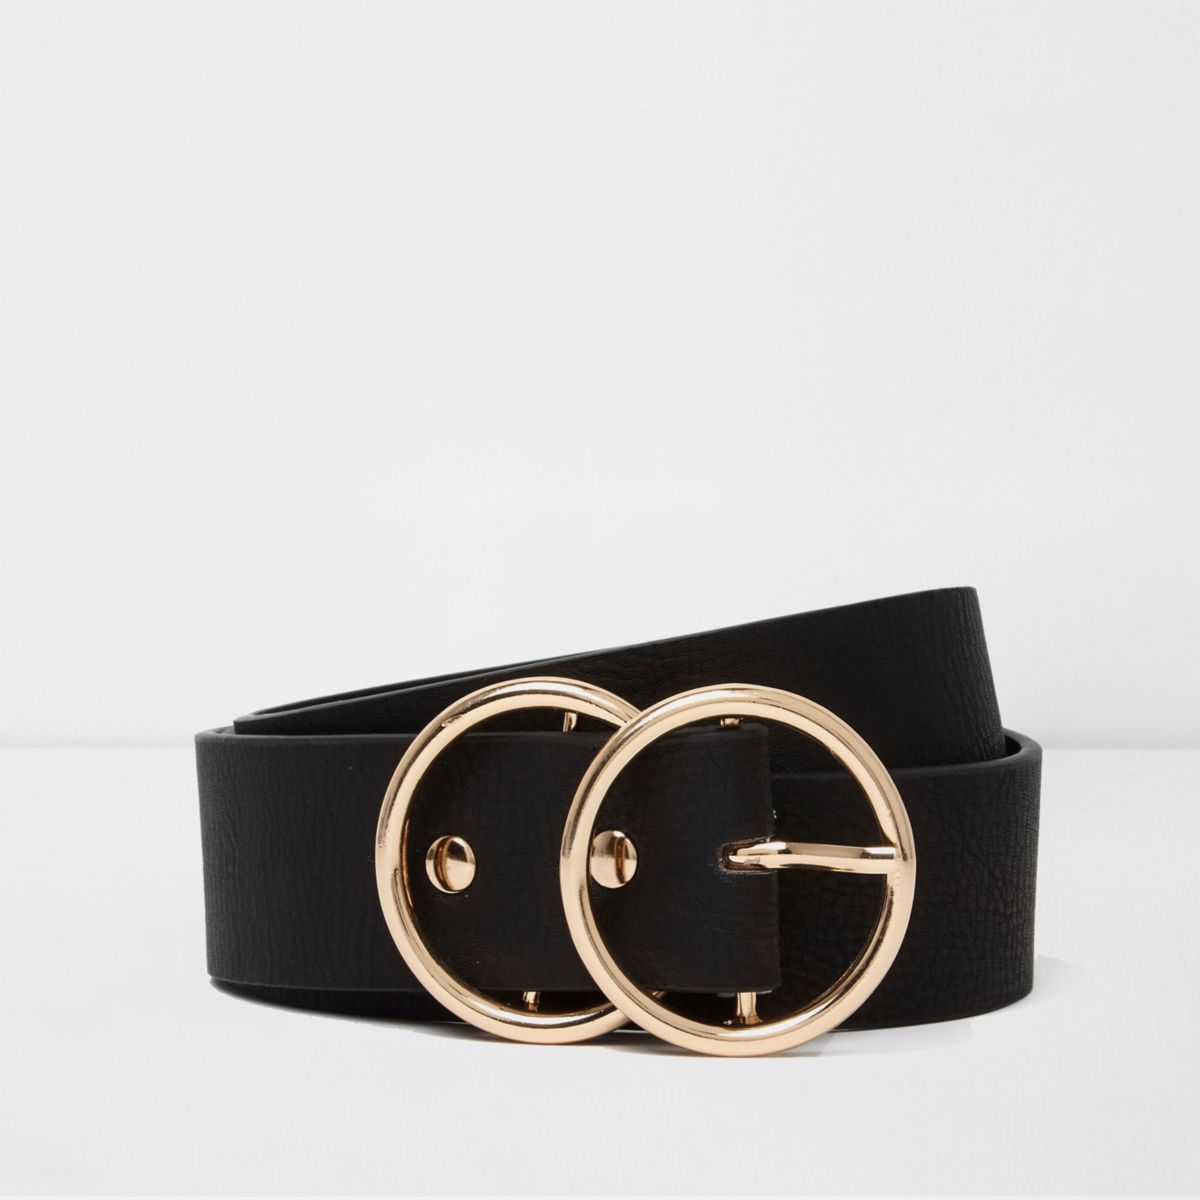 Black gold tone double ring belt